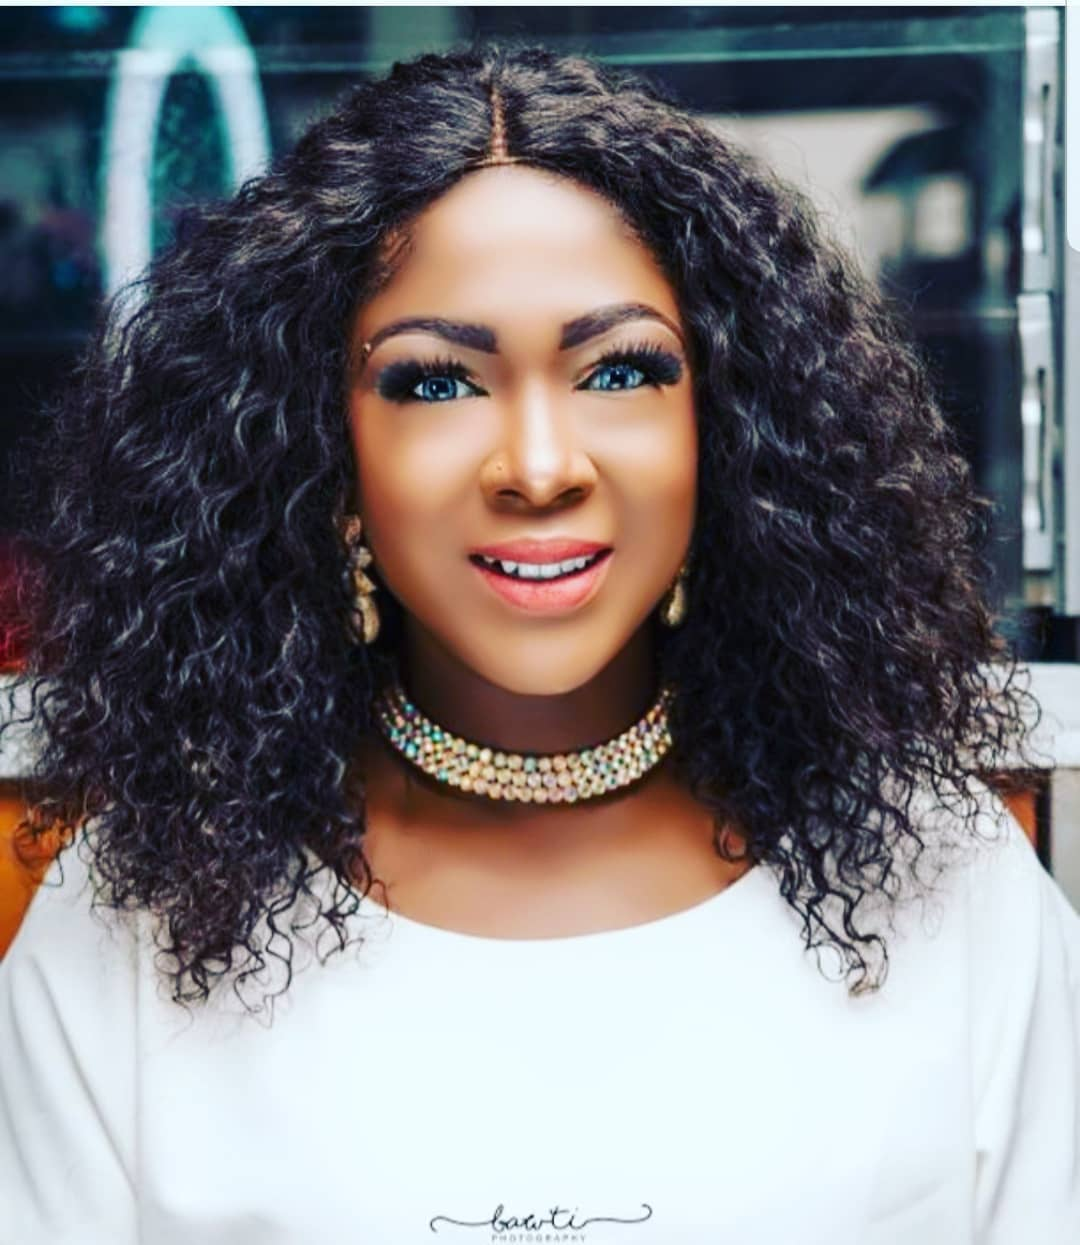 Whats wrong in being Black? Susan Peters blast The Industry over bleaching Trend